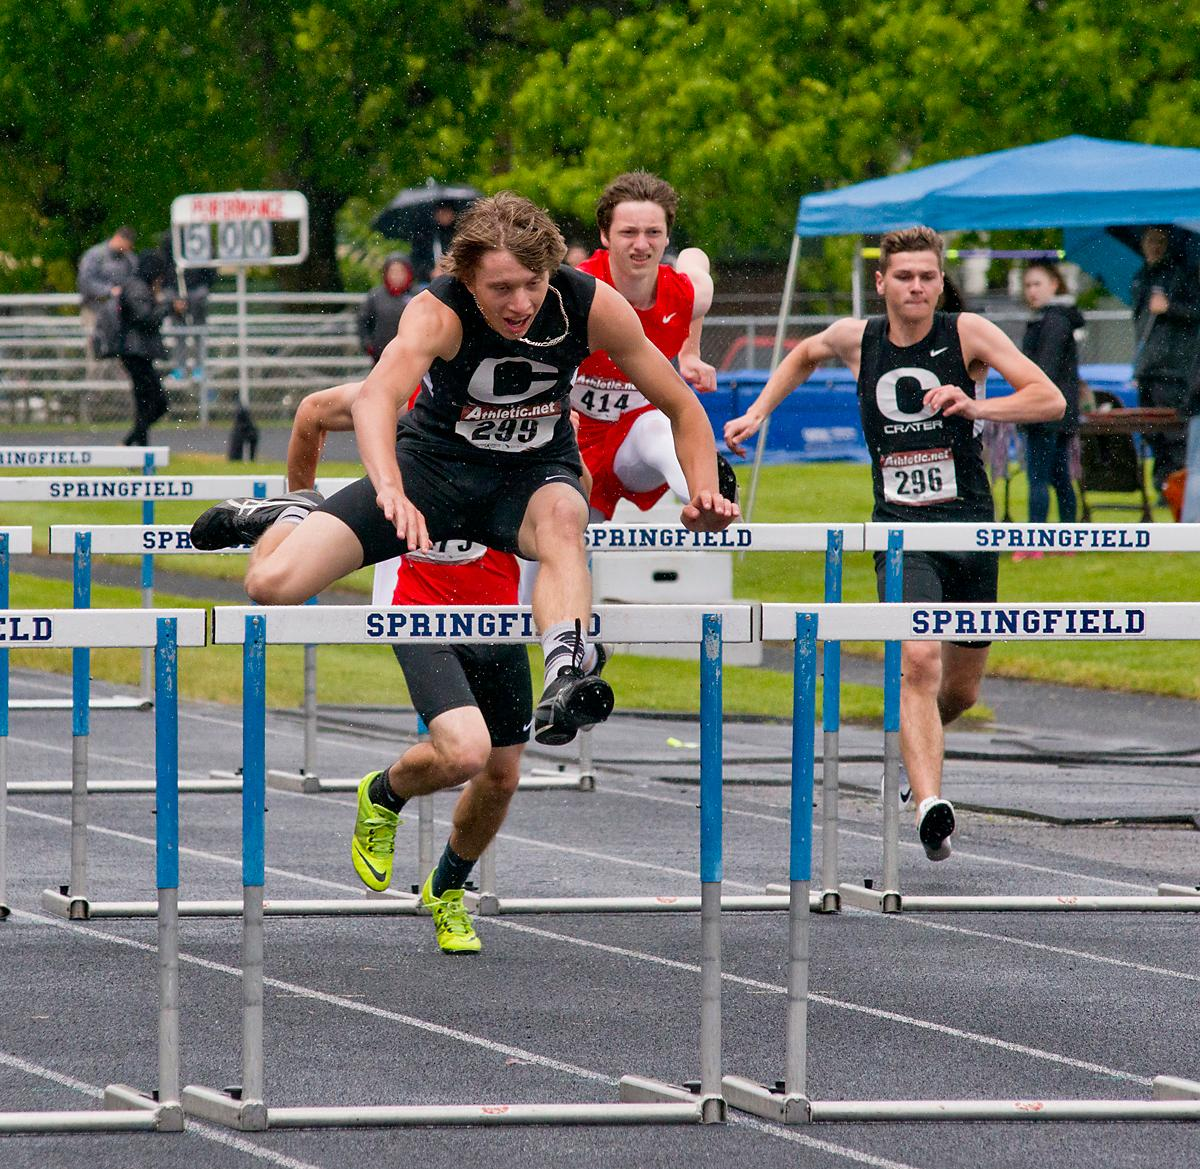 Cal Duke, from Crater, wins the 110 meter hurdles with a time of 15.61 at the 5A-3 Midwestern League District Track Meet. Photo by Dan Morrison, Oregon News Lab